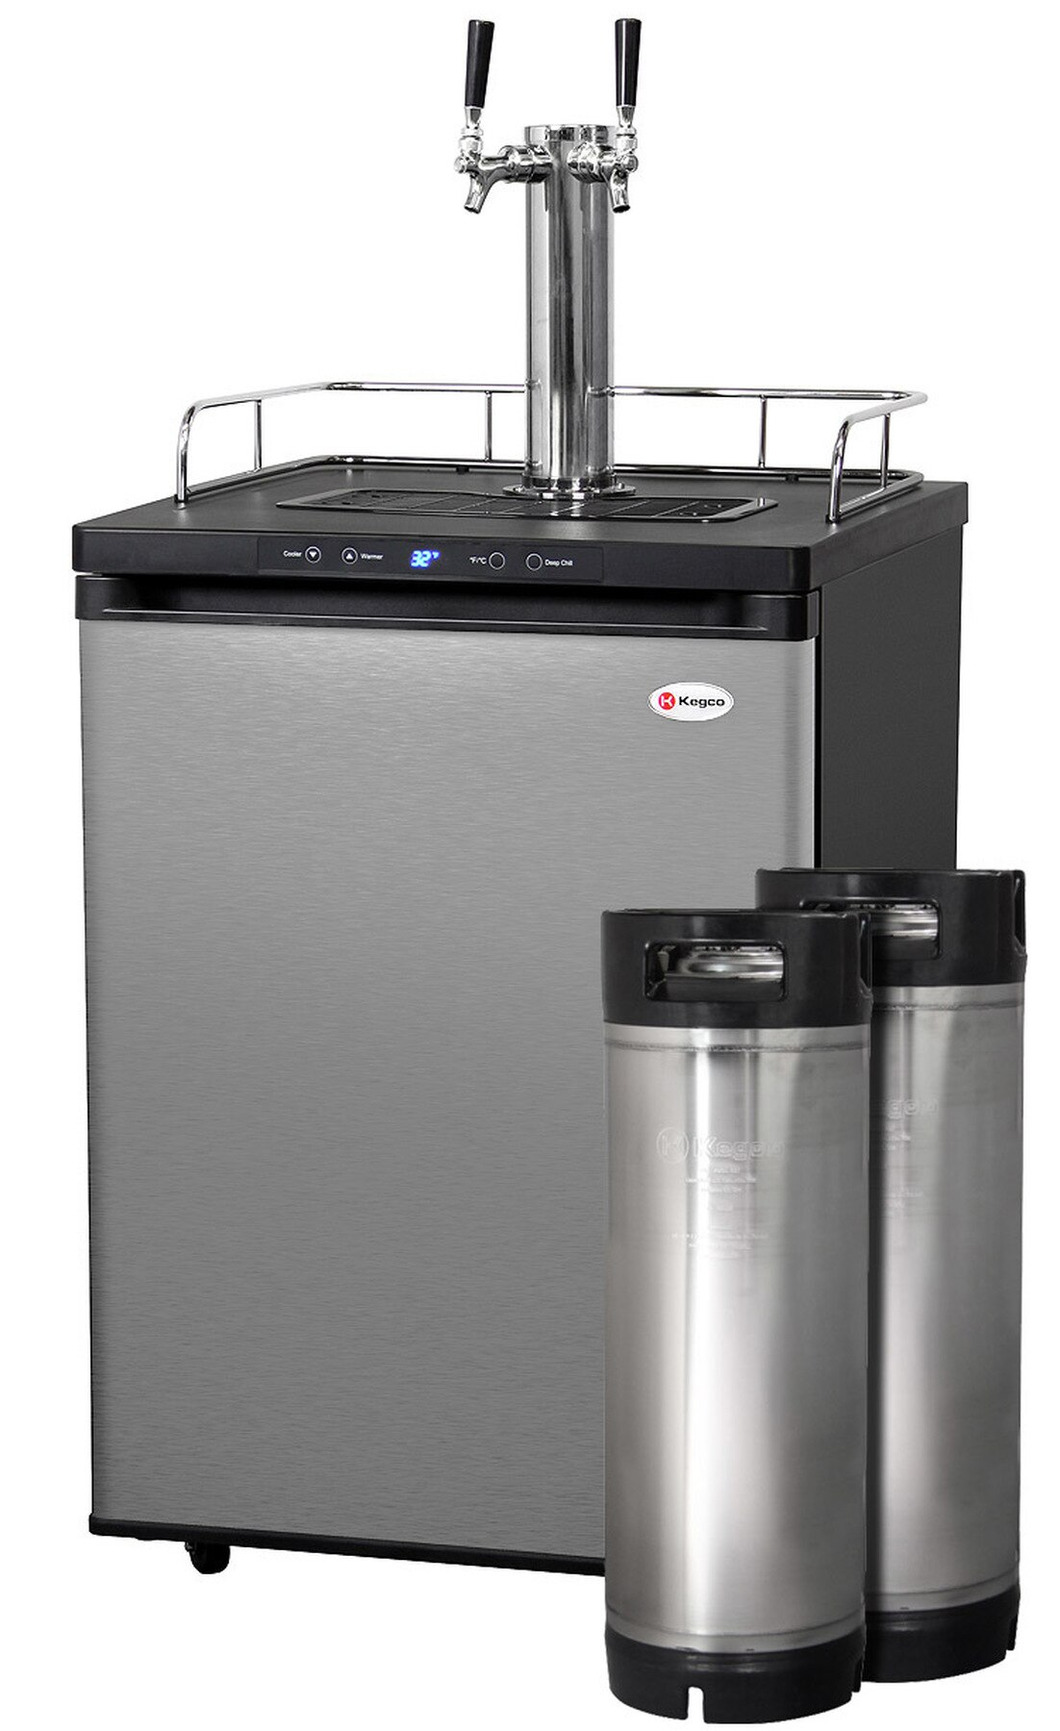 HBK309S-2K HOME BREW KEGERATOR WITH 5-GALLON KEGS - BLACK CABINET WITH STAINLESS STEEL DOOR